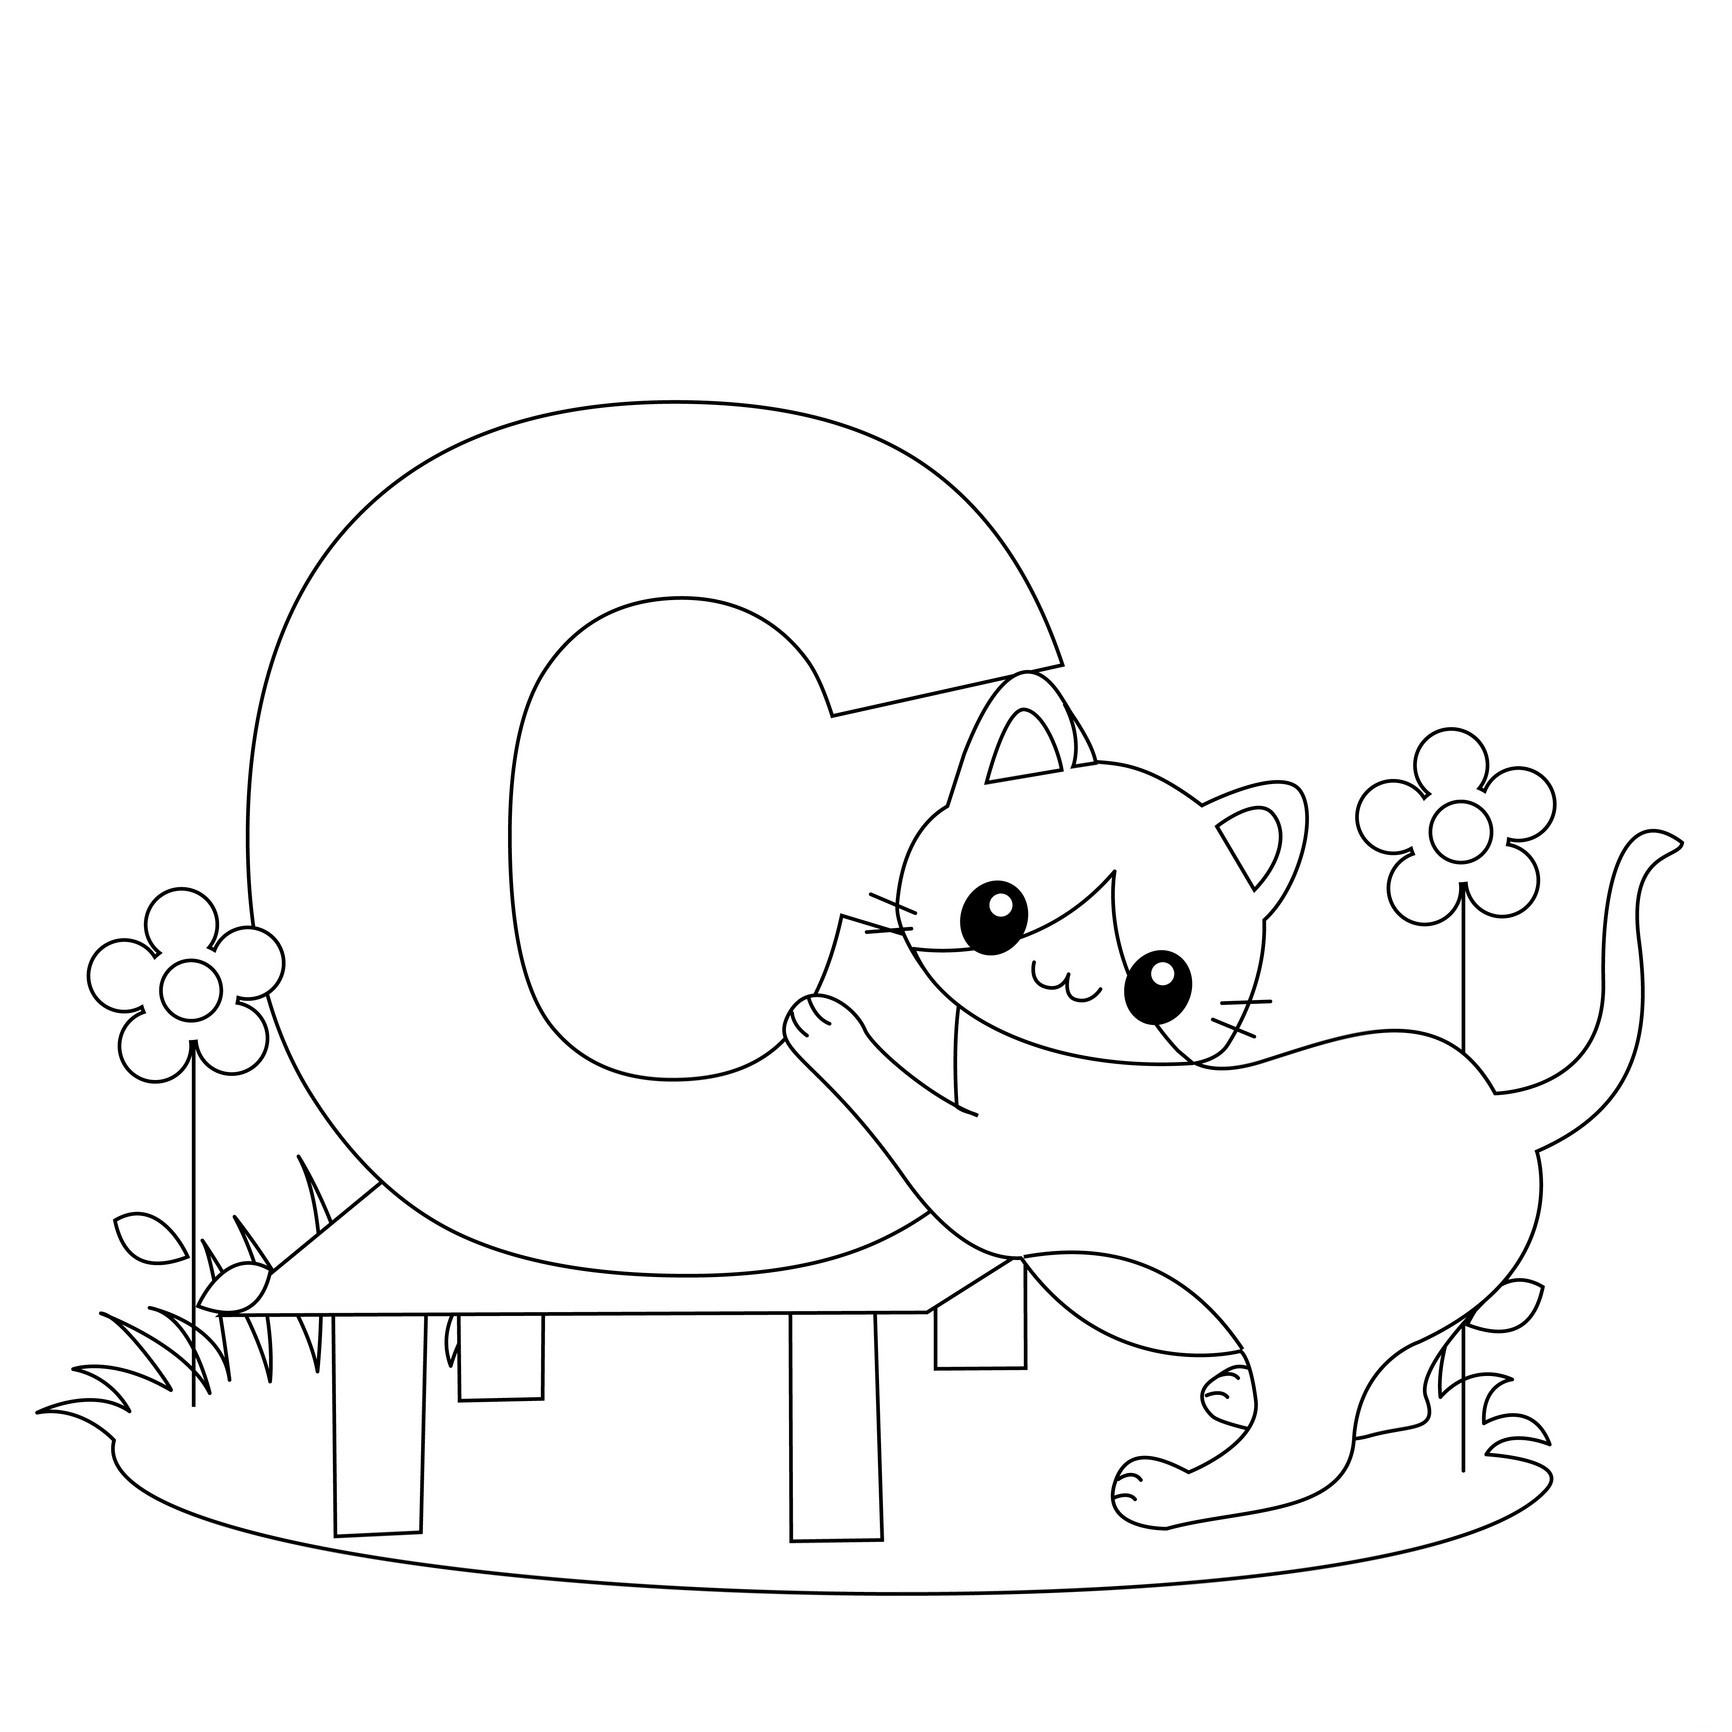 Worksheet For Preschoolers Animals